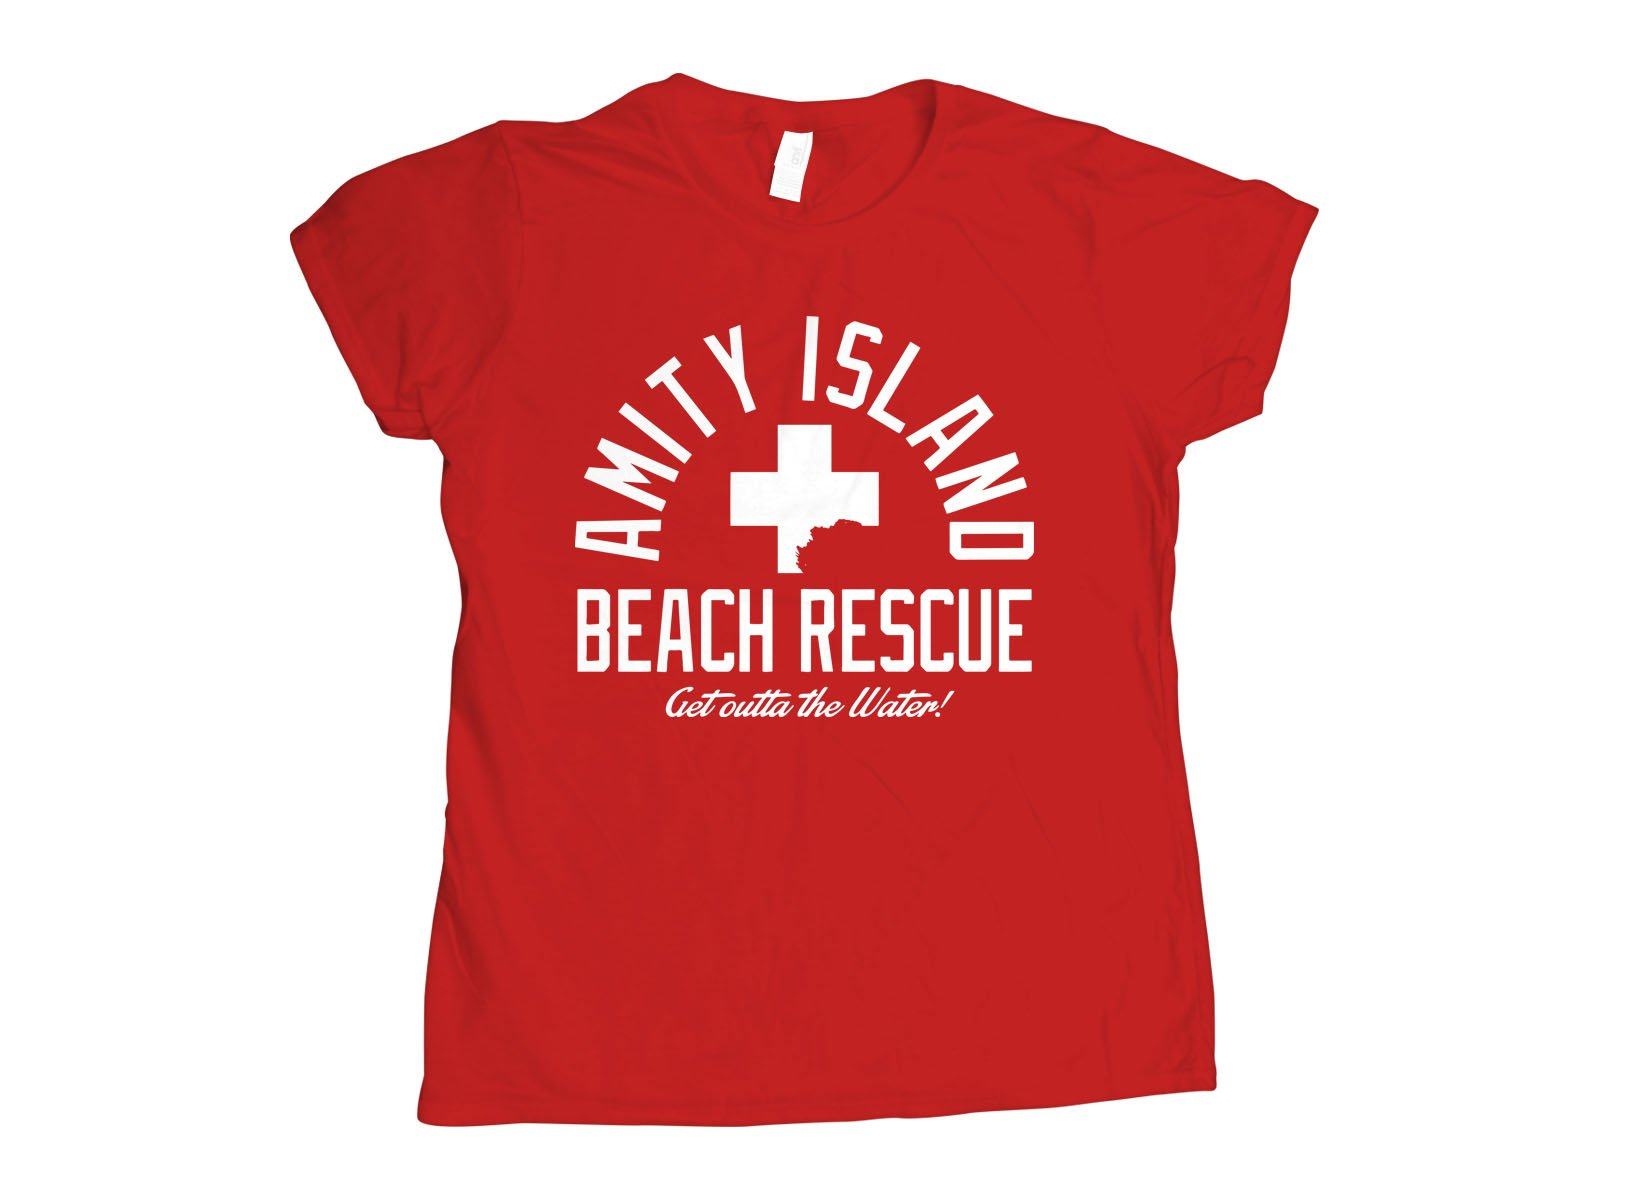 Amity Island Beach Rescue on Womens T-Shirt